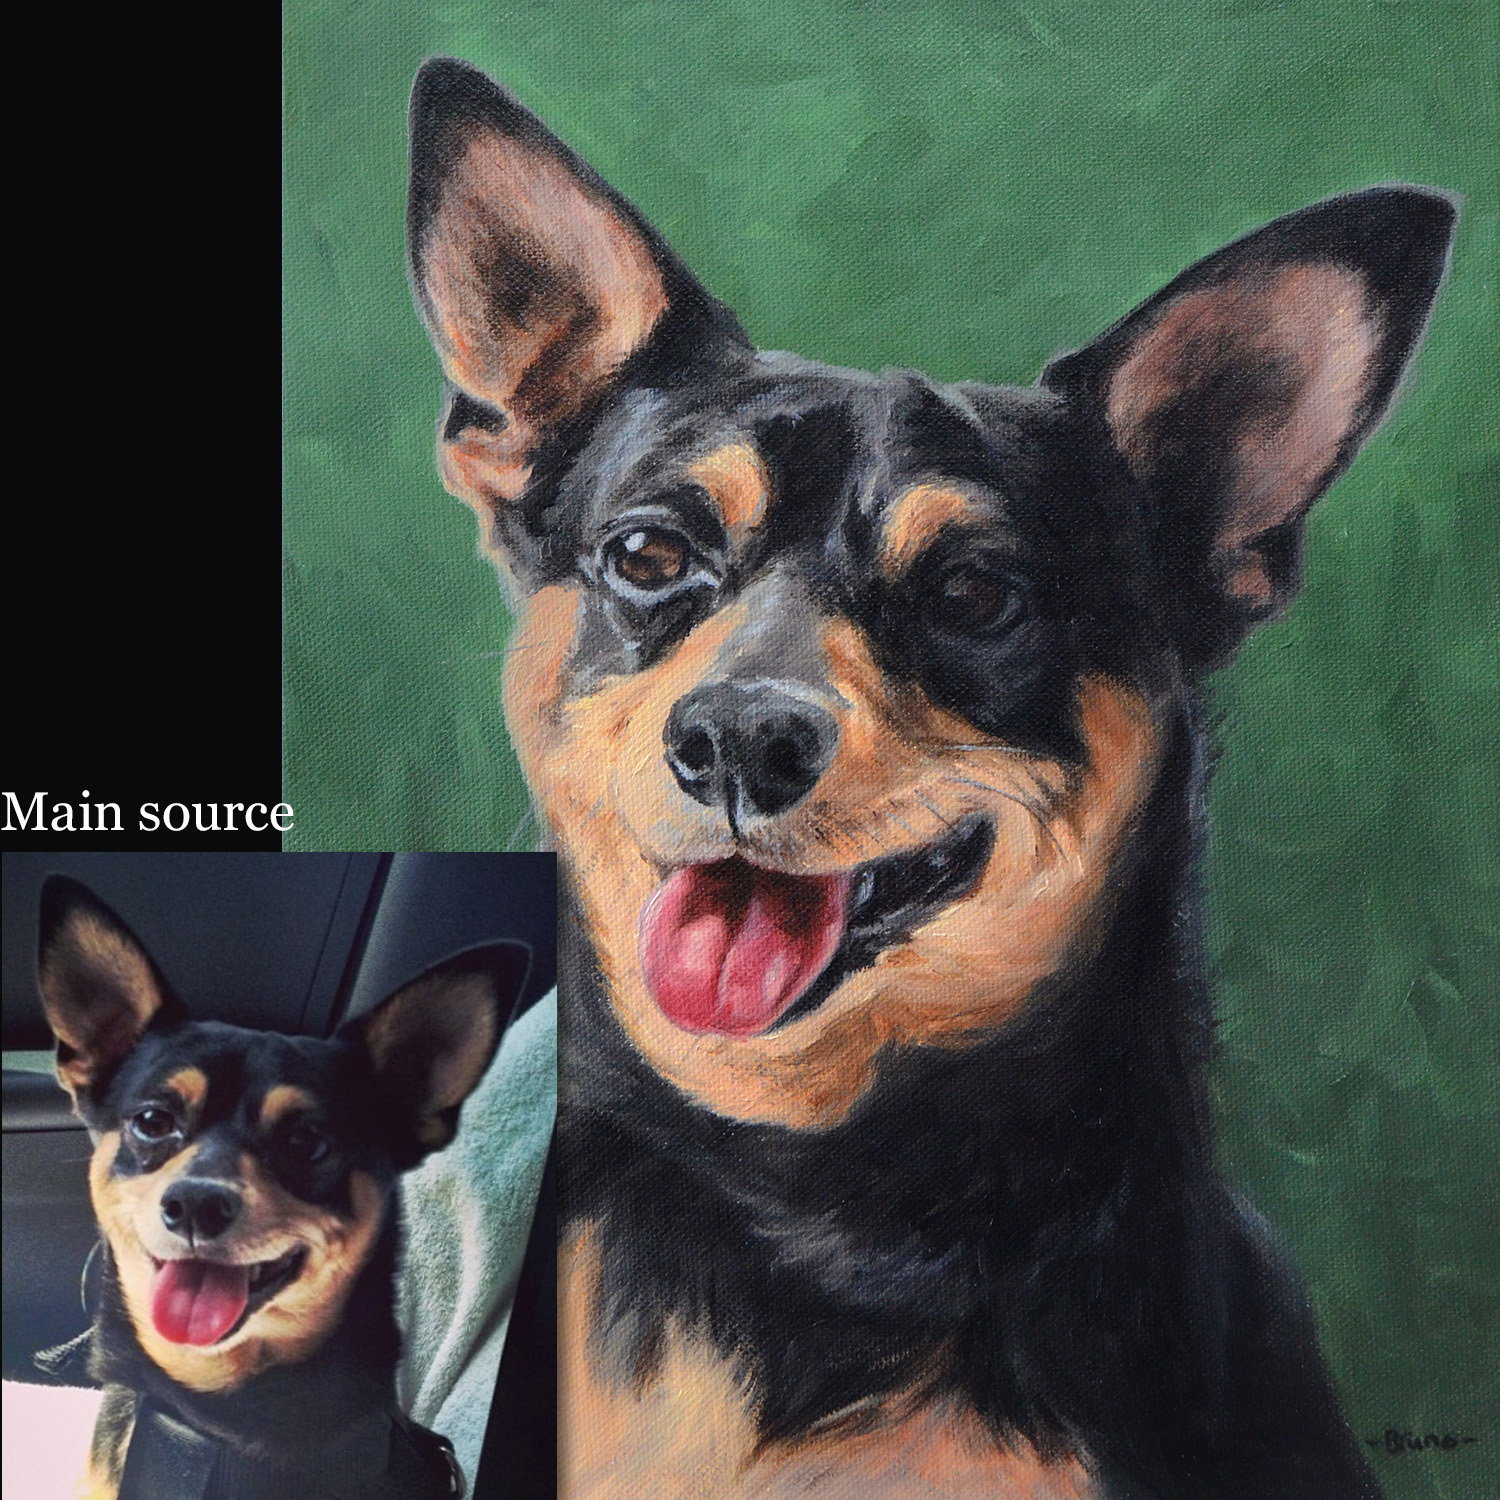 Chihuahua dog portrait 1 oil painting on canvas